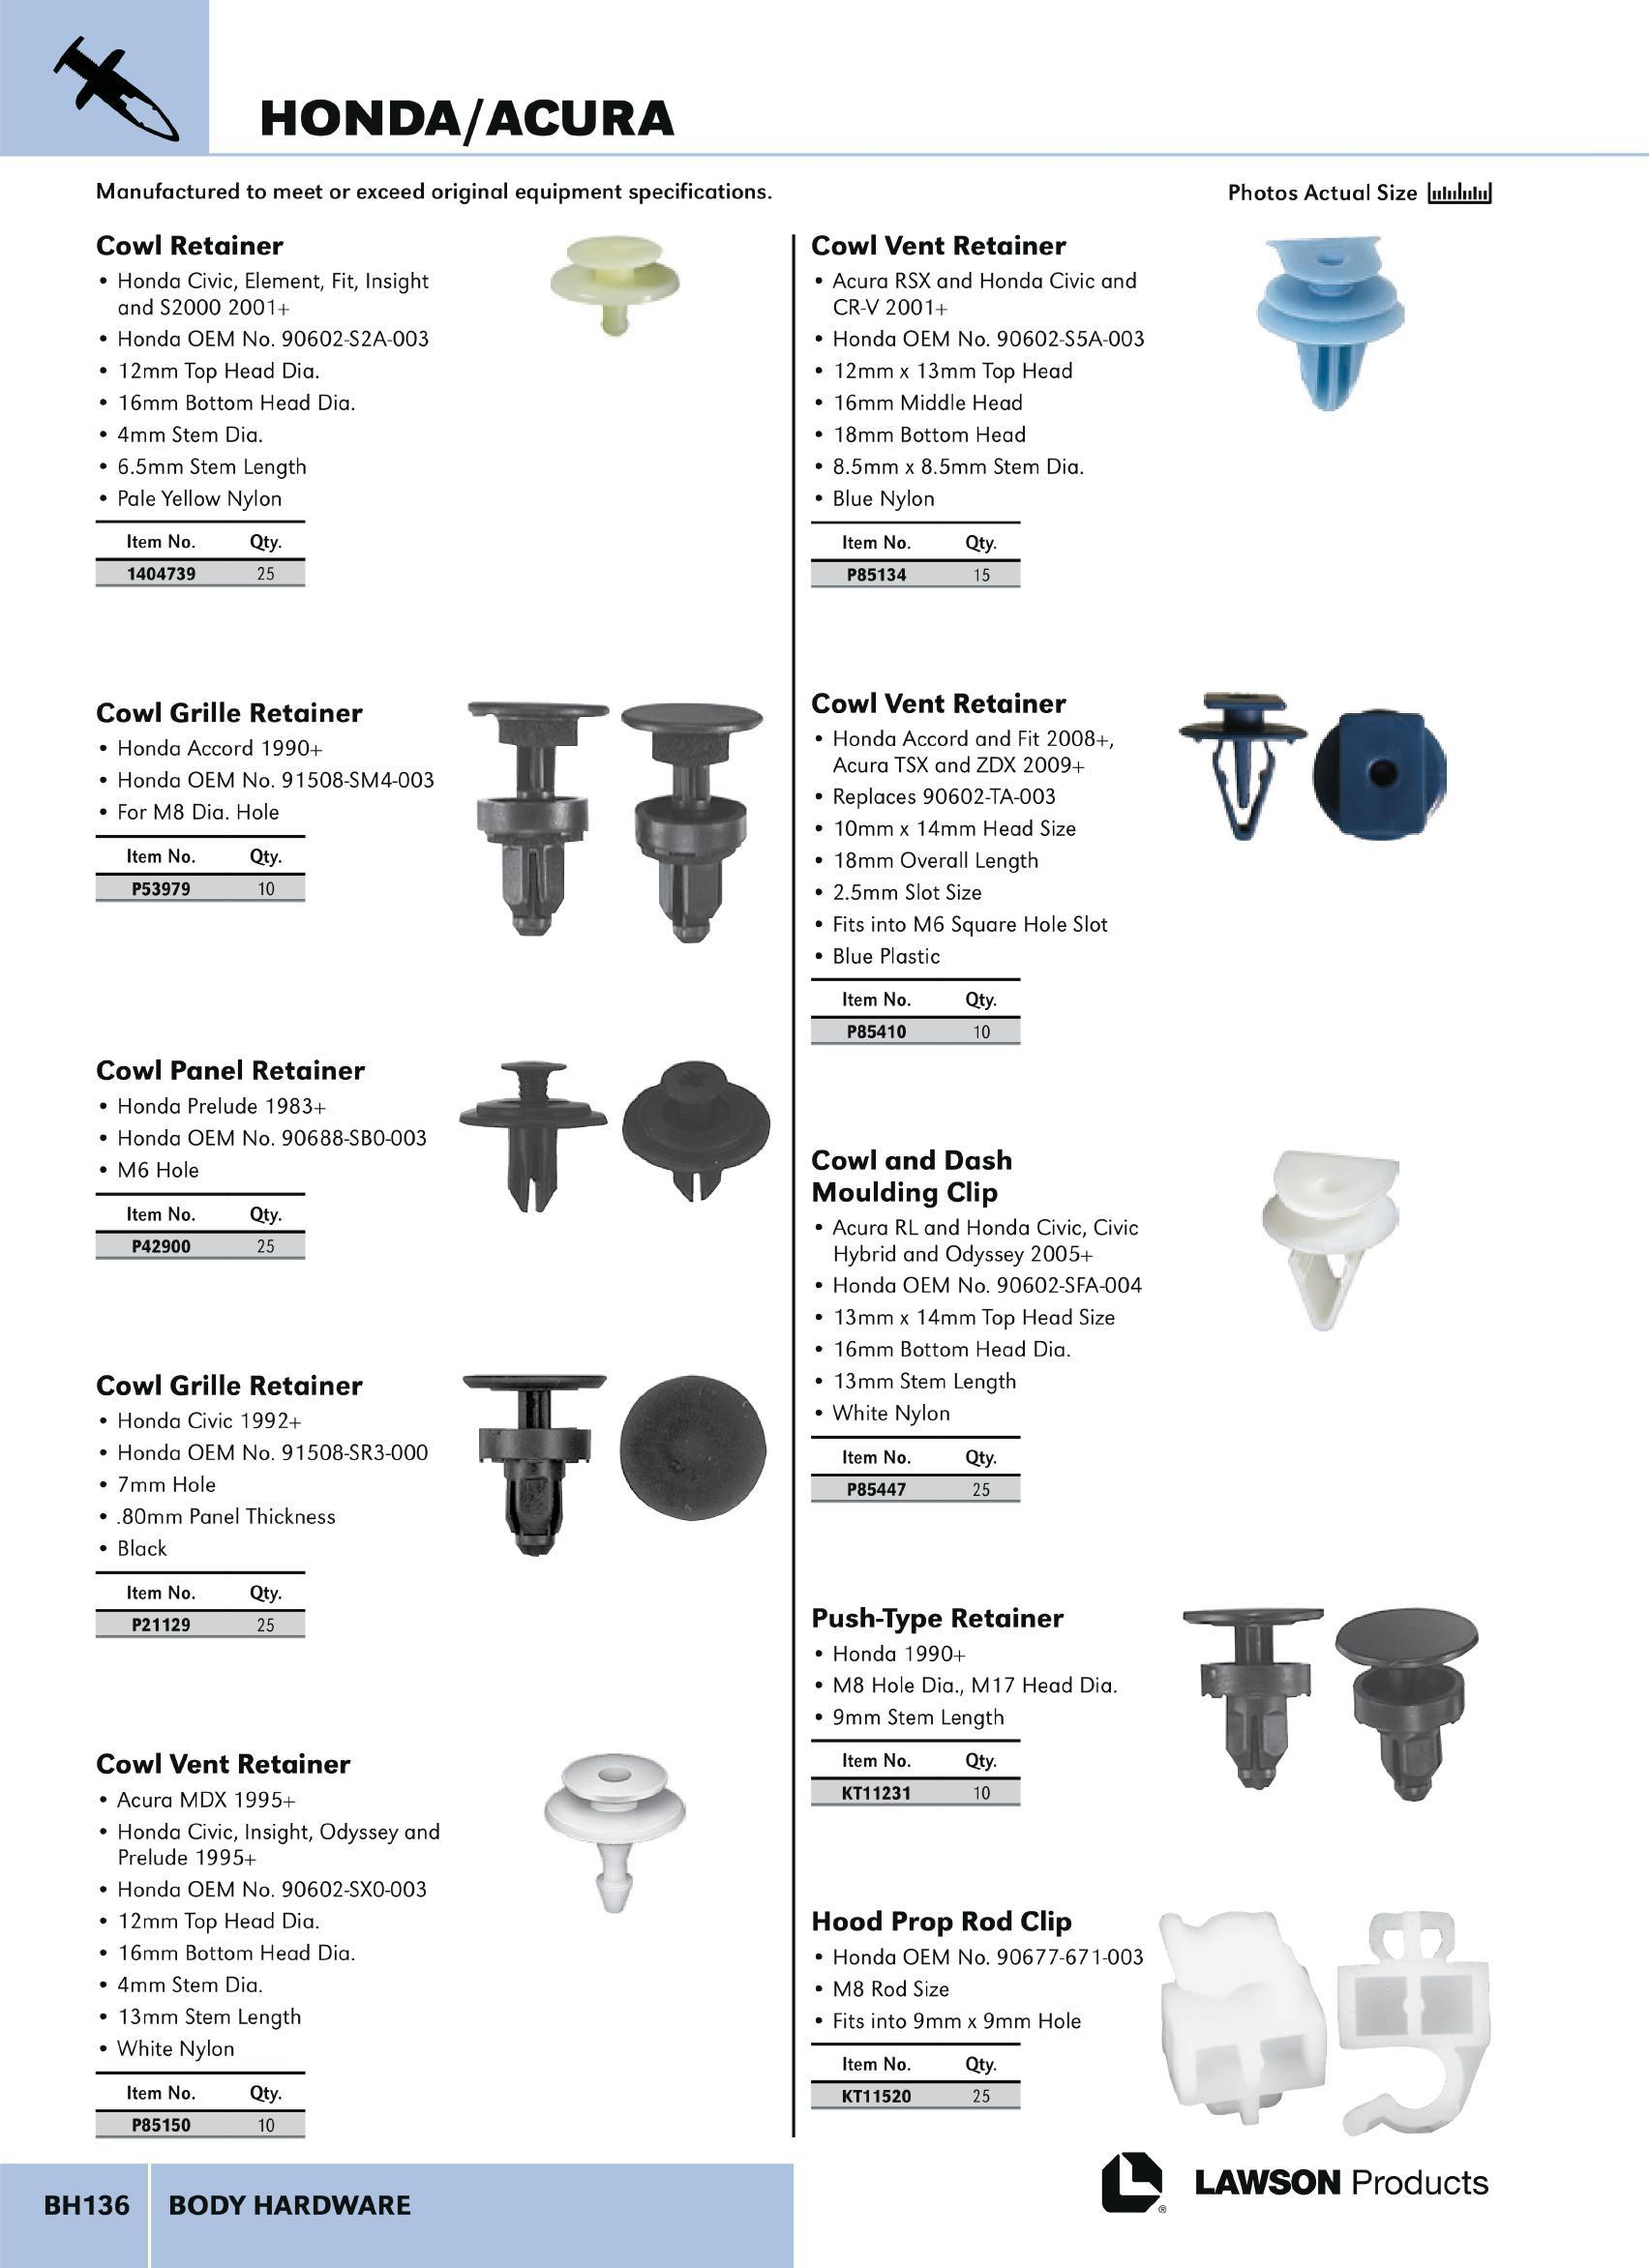 Body Hardware - Lawson Products Catalog CA 2015 Page BH136